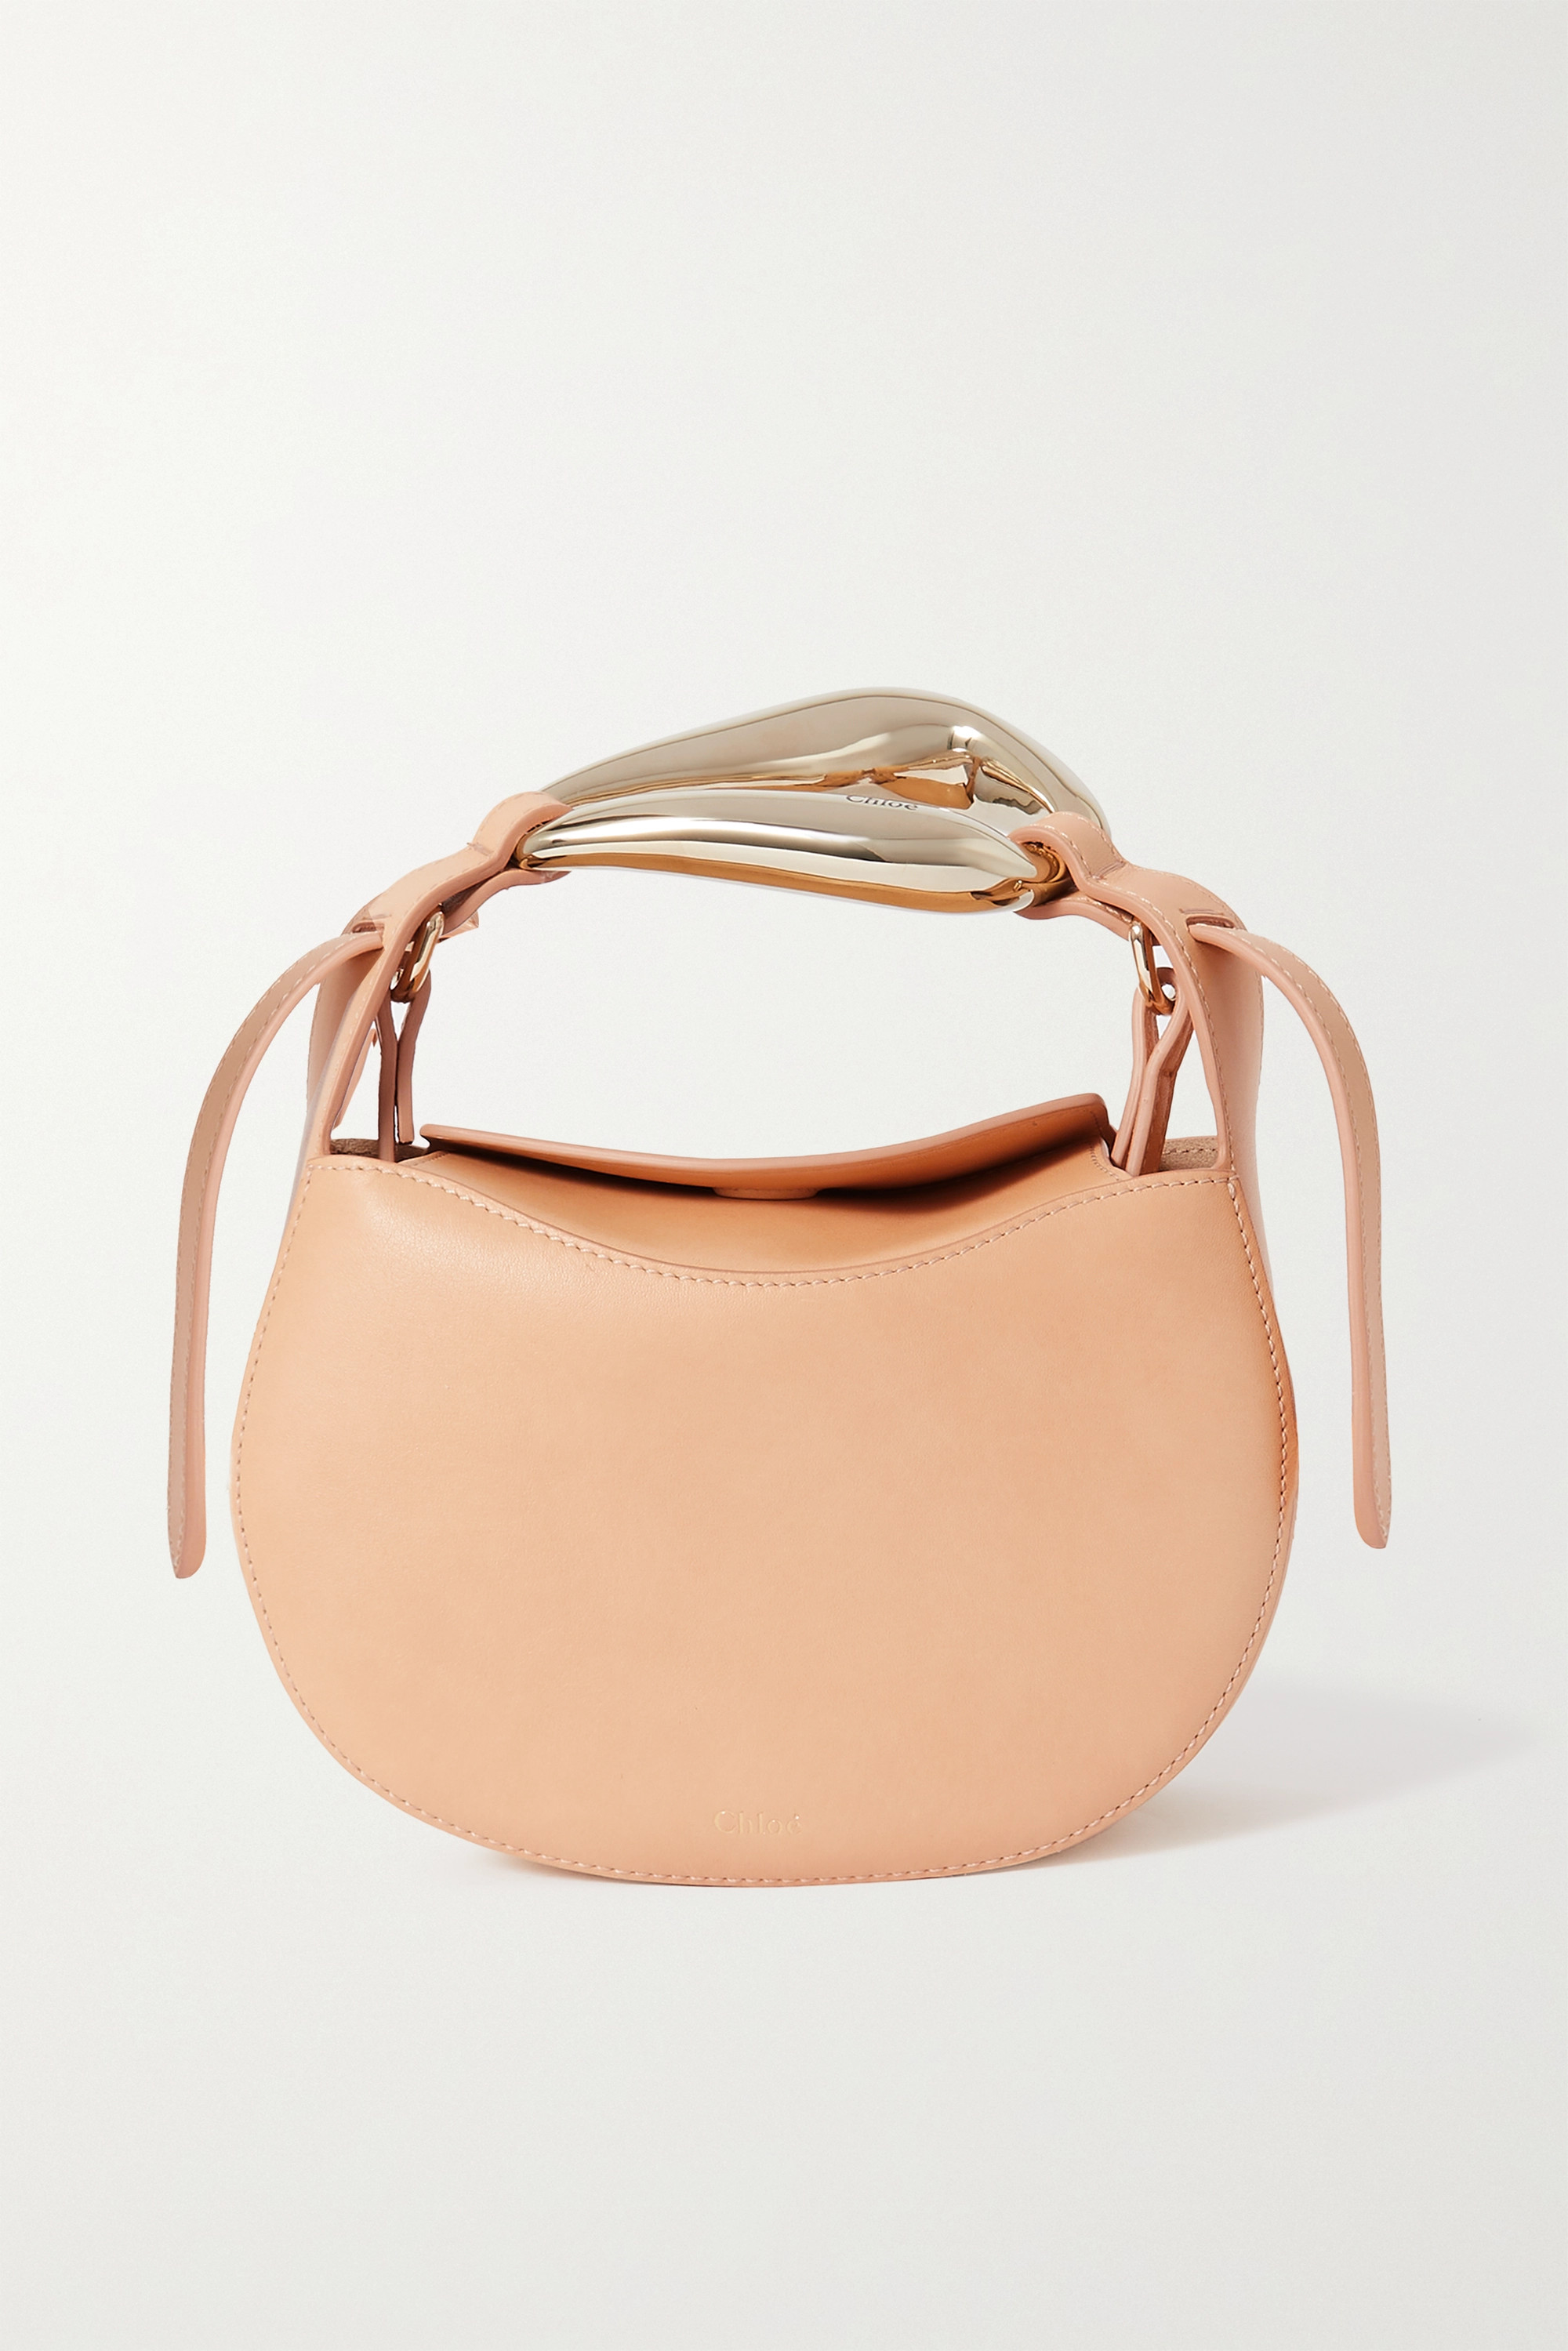 Chloé Kiss small leather tote